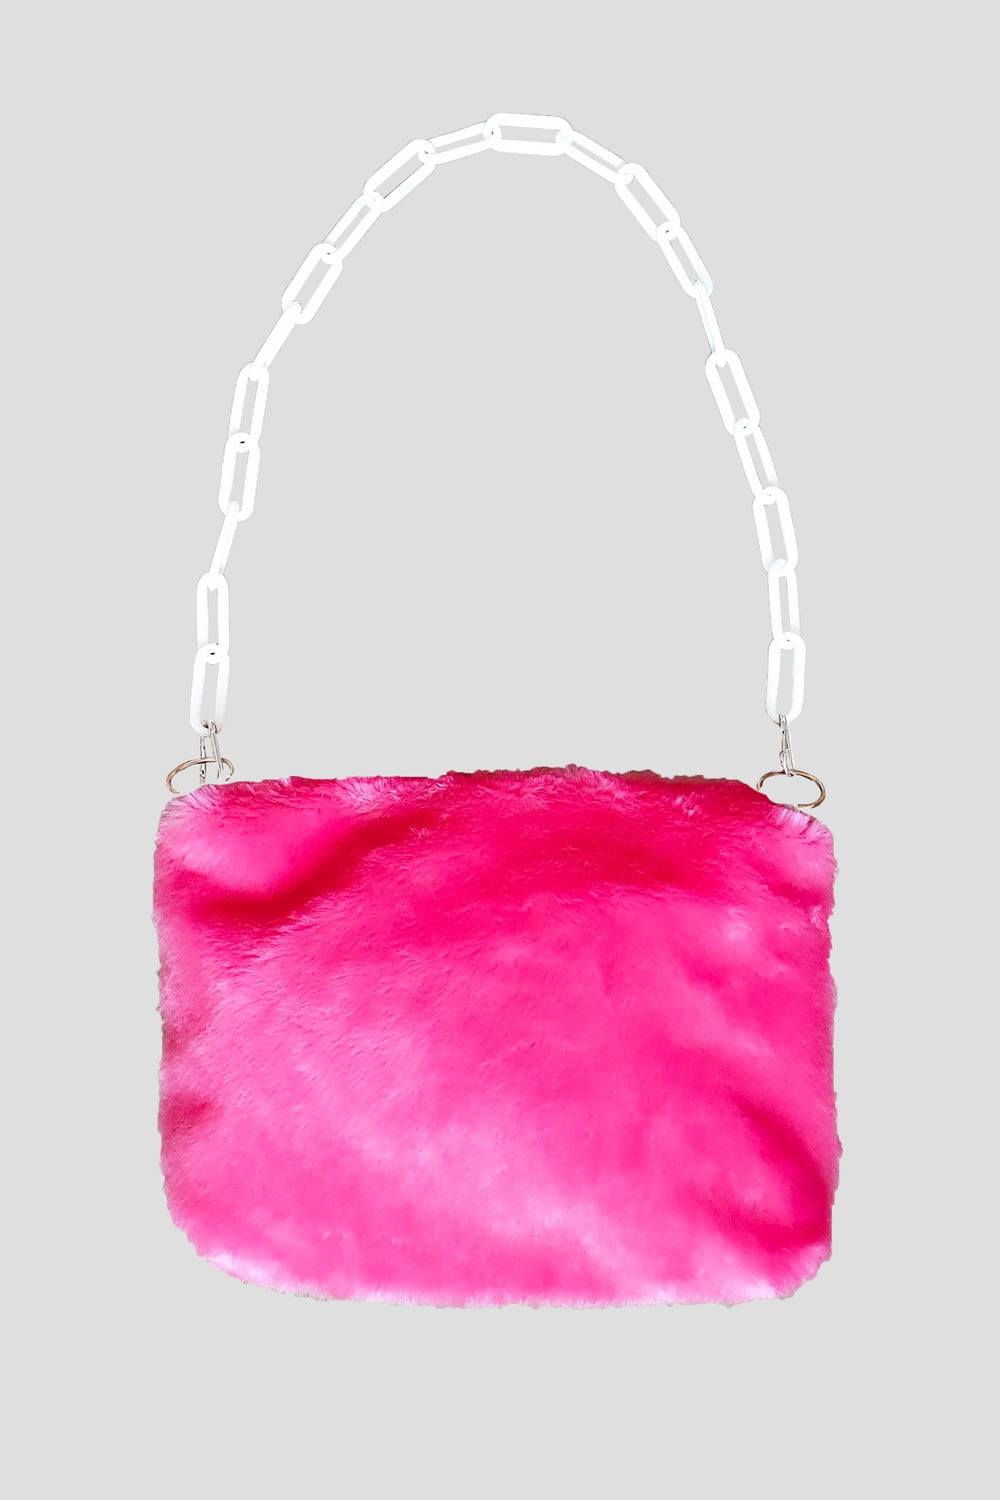 Image of Pink Fluffy Purse